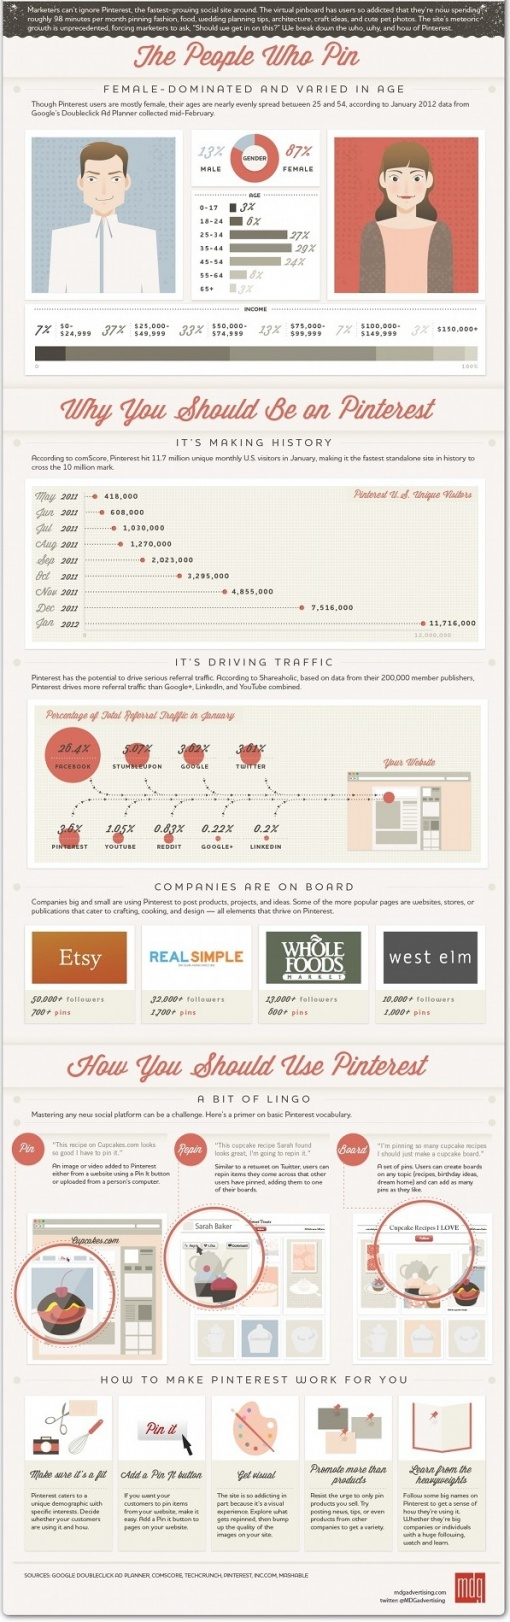 Marketers guide to Pinterest